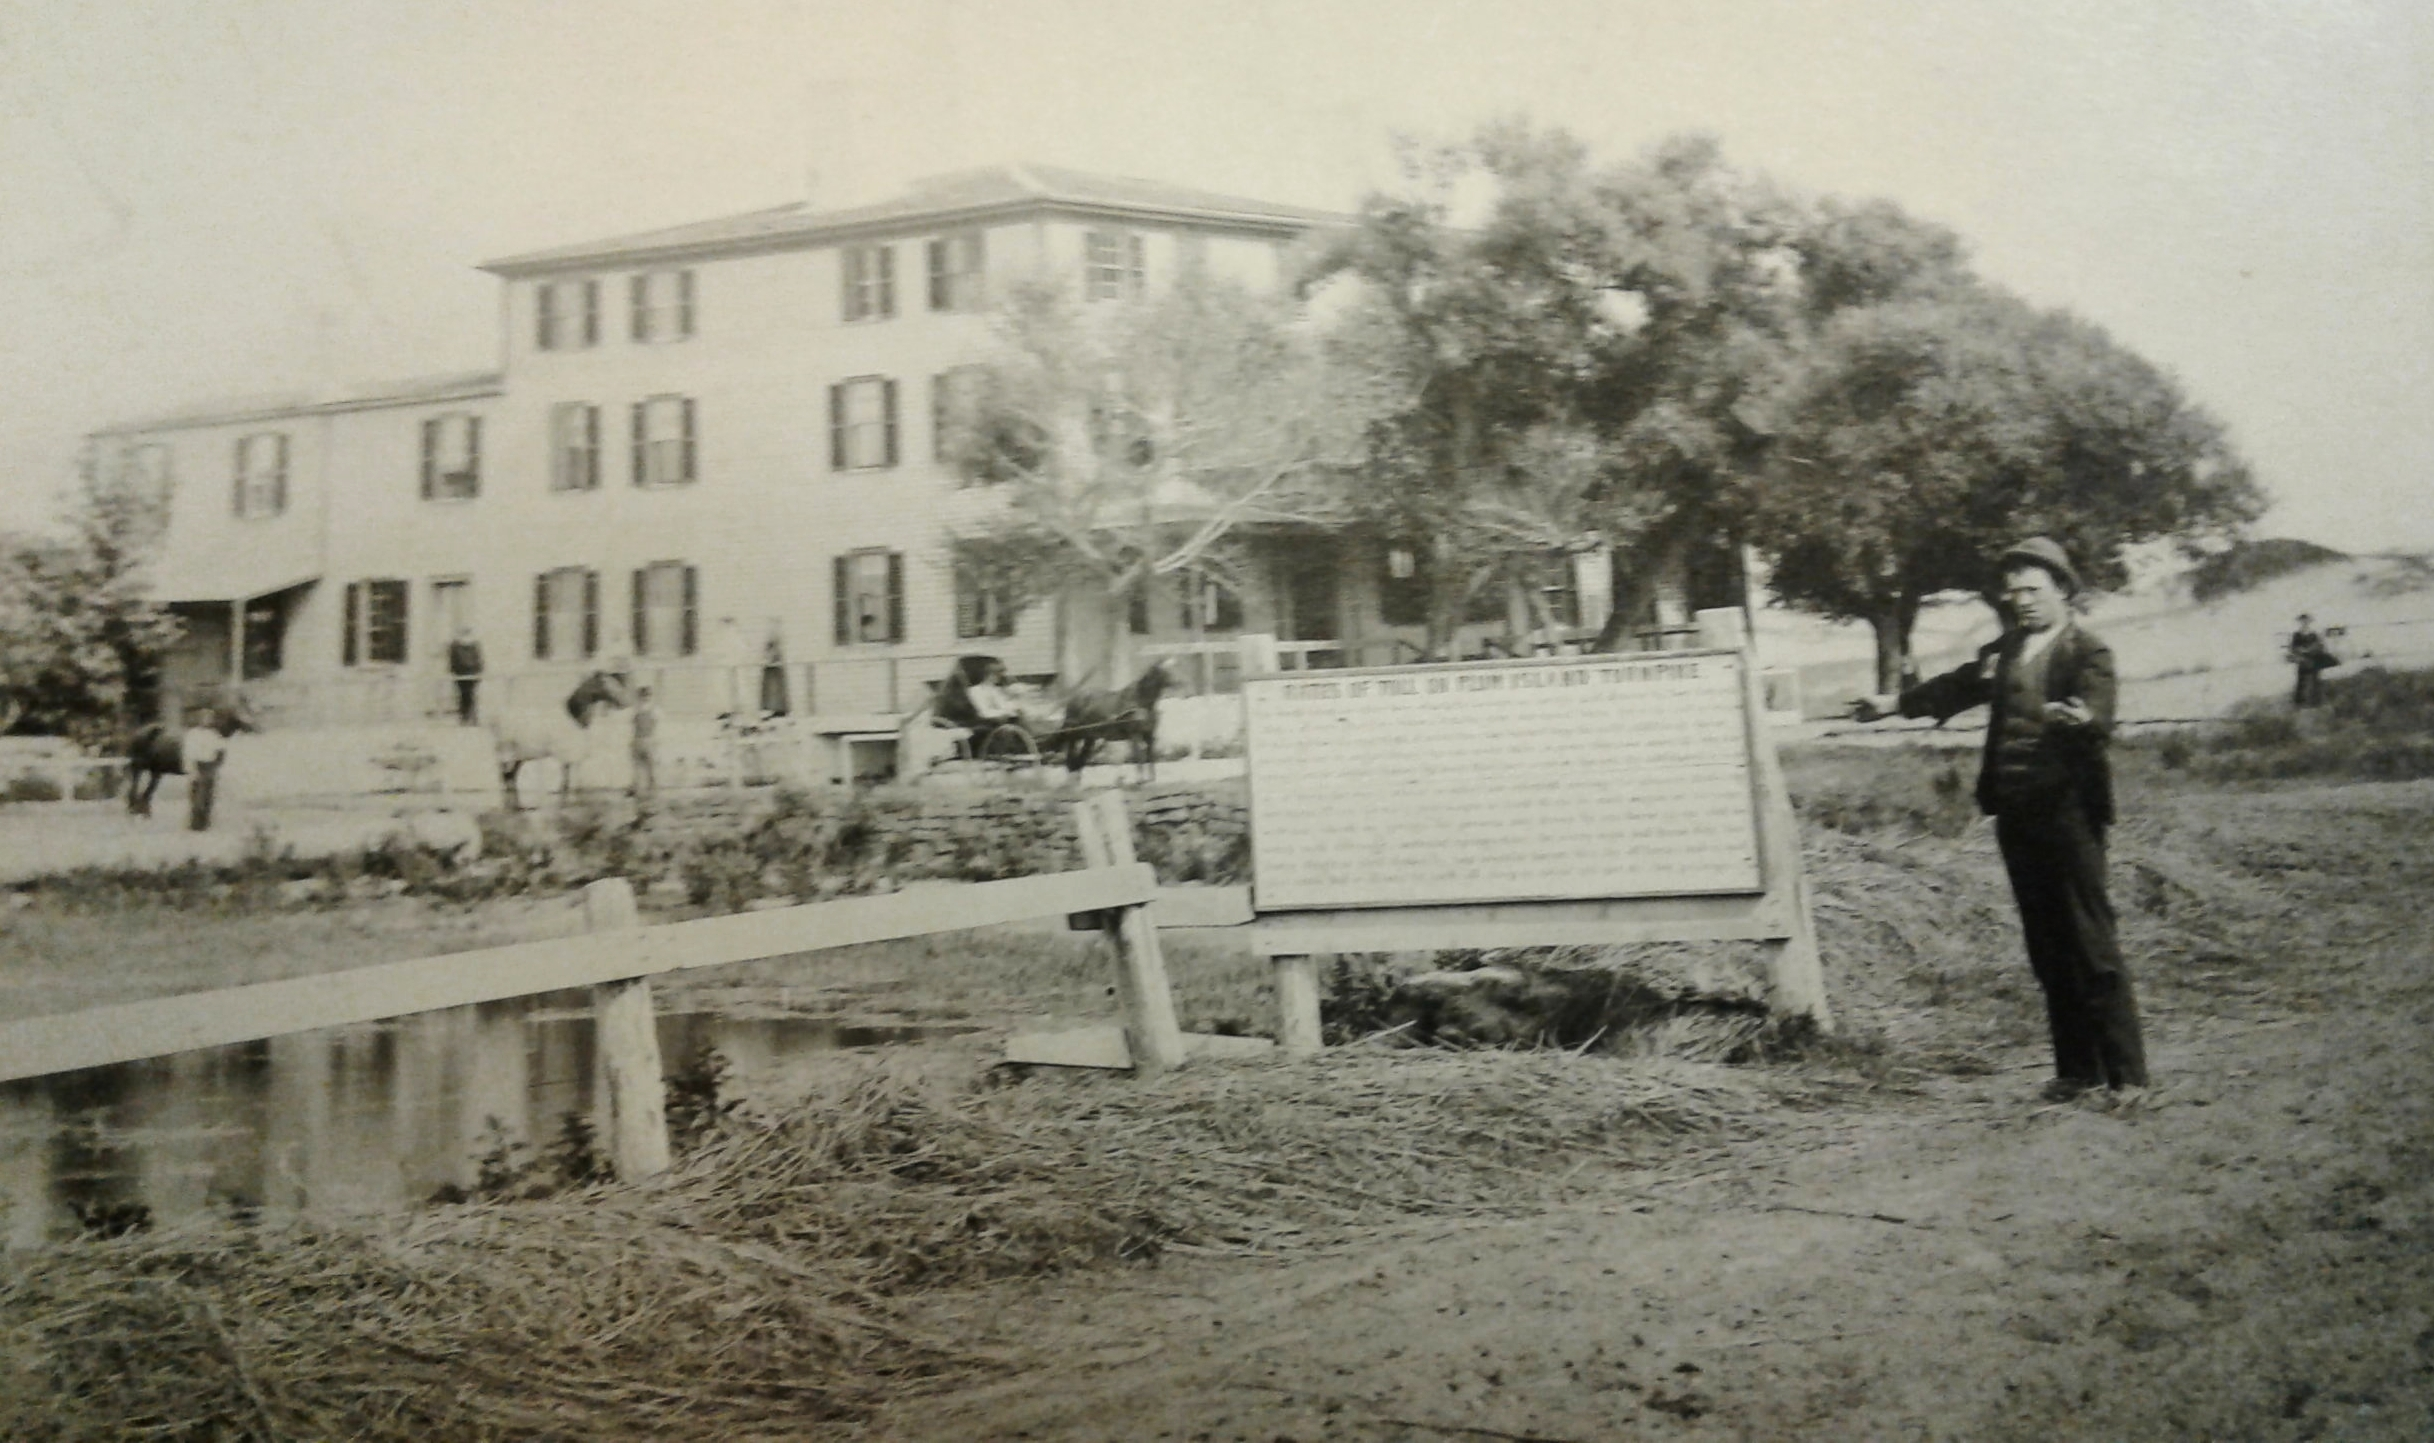 Postcard of the Plum Island Hotel and Turnpike, Curtesy of the Newburyport Public Library Archival Center.